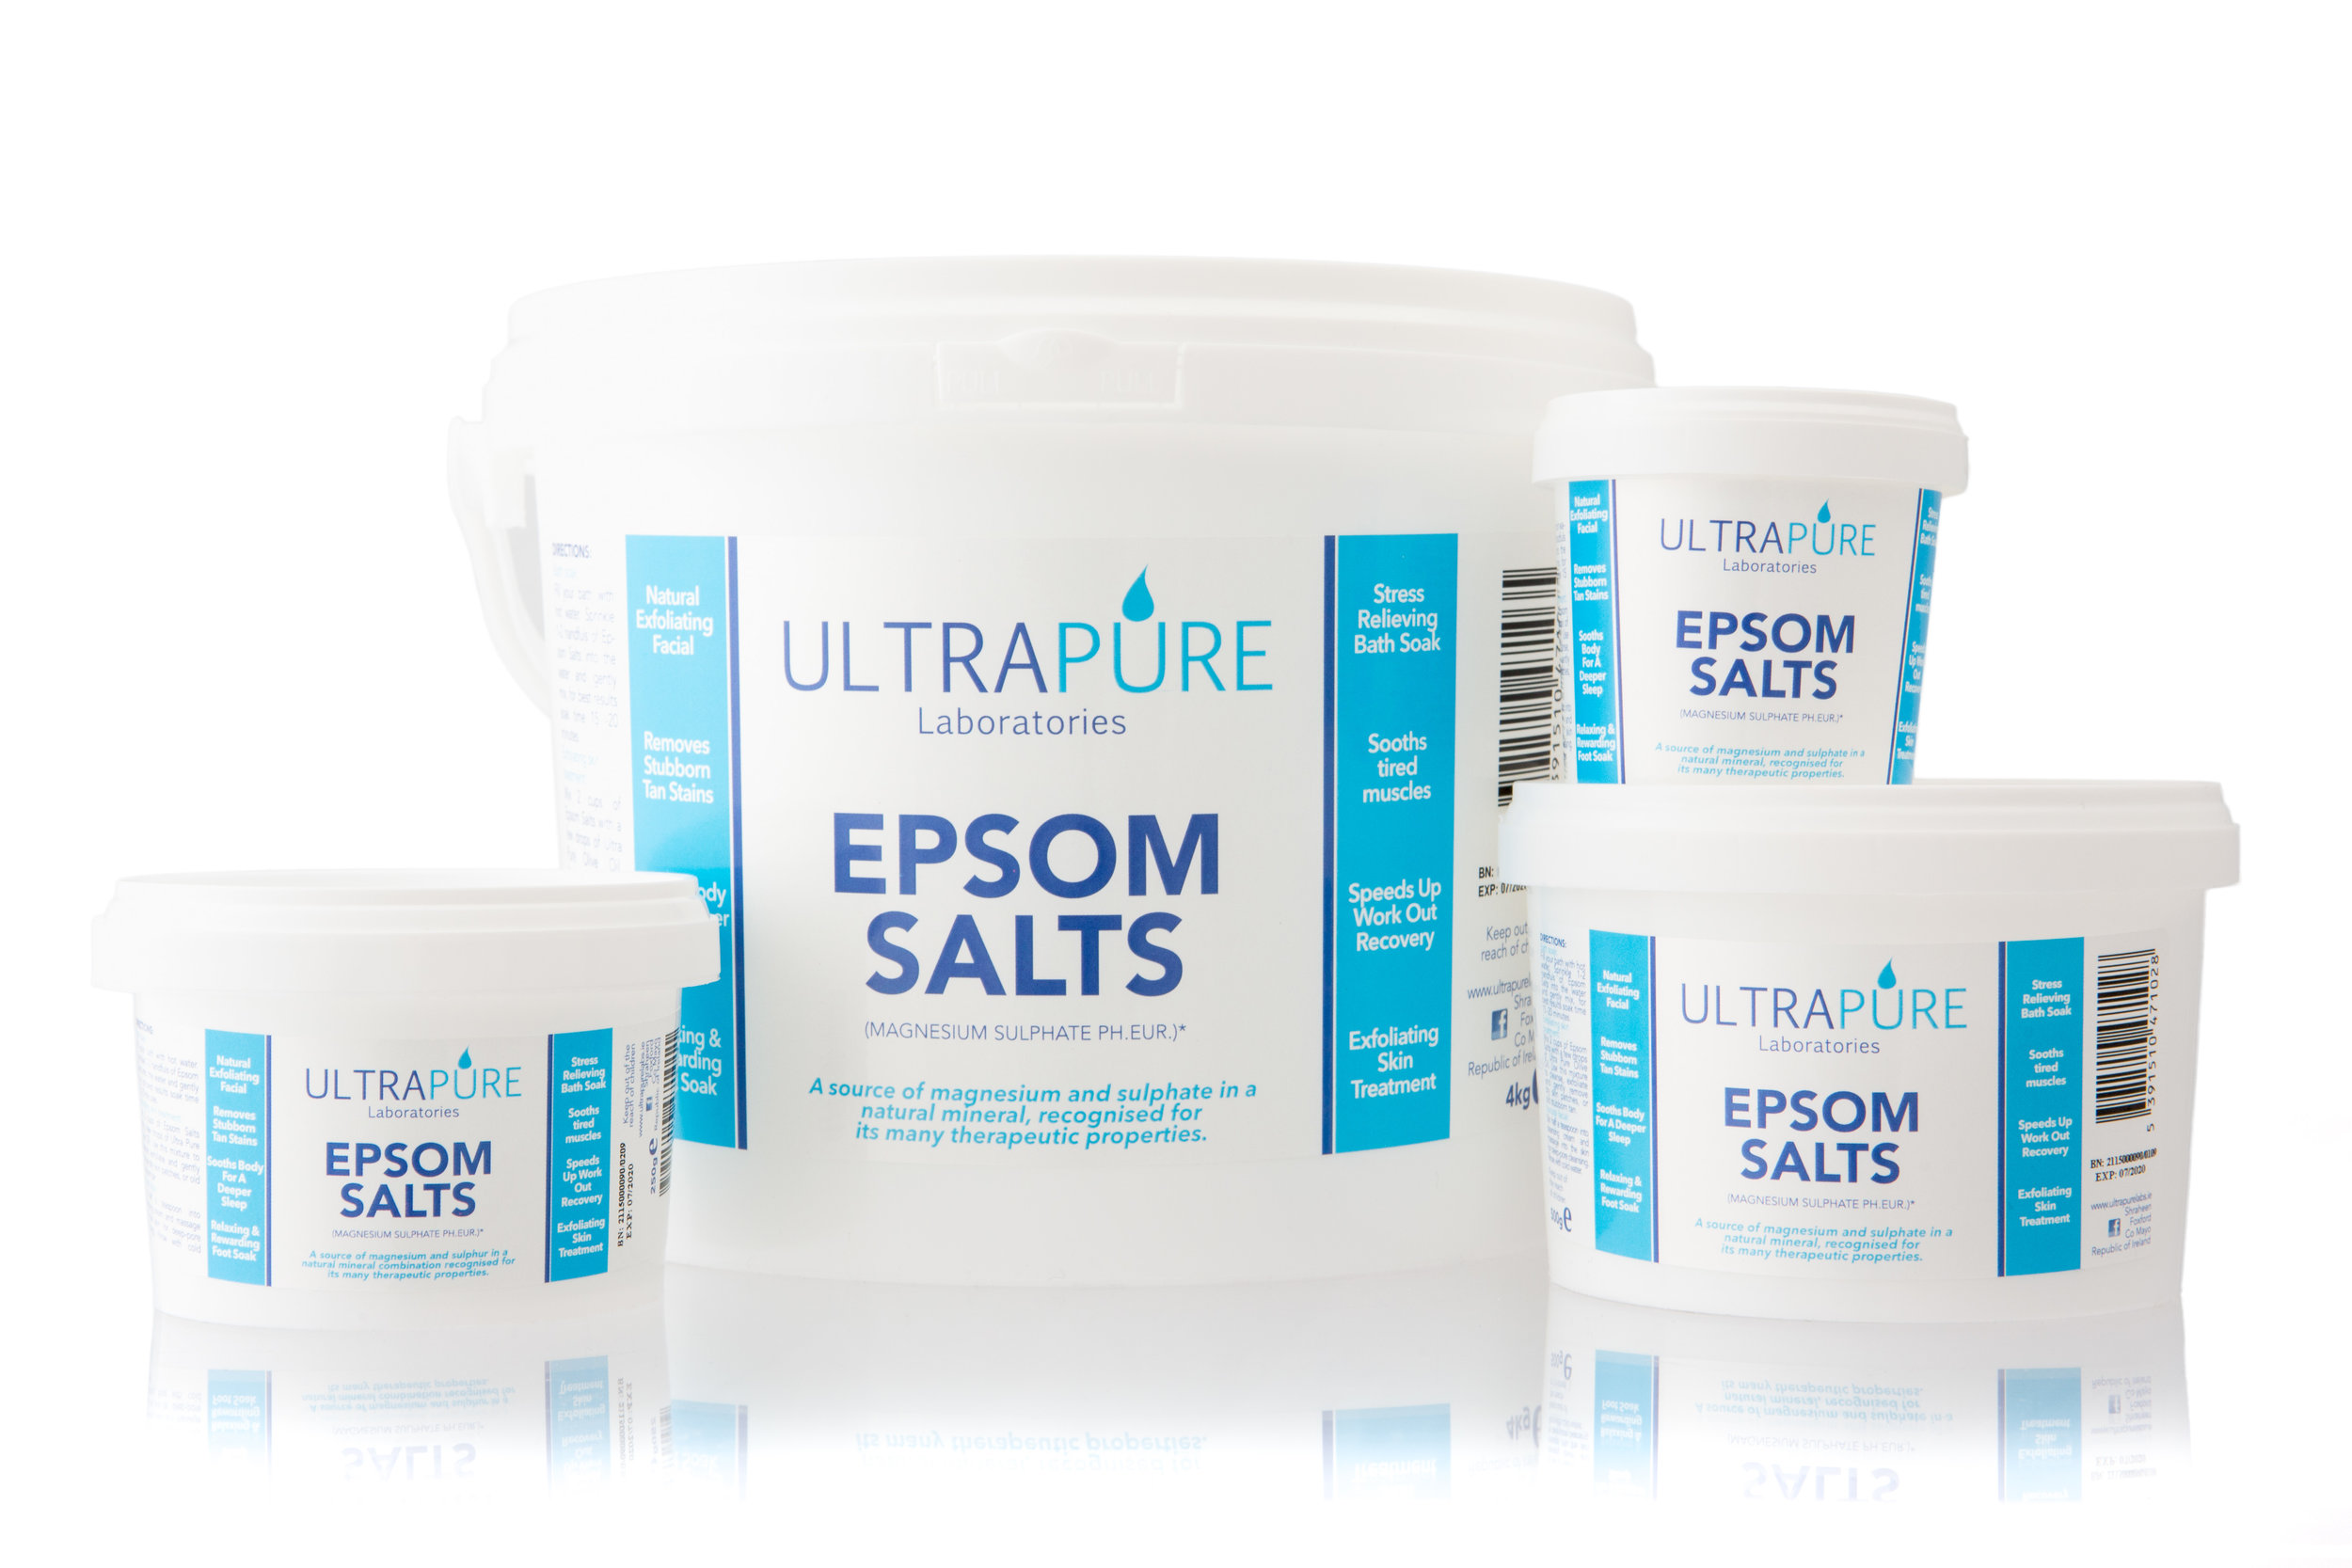 Epsom Salts is a great way to aid the body in a natural process of soothing and relaxing after sports, athletics or simply a busy day.